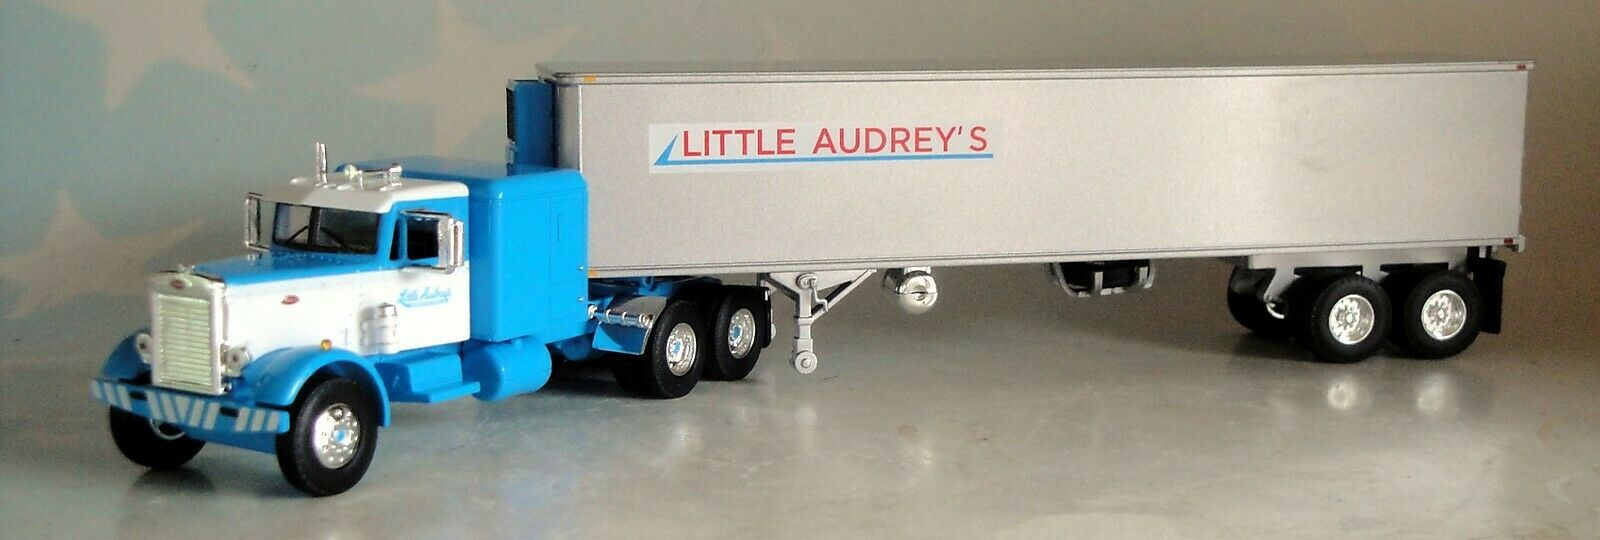 FIRST GEAR LITTLE AUDREY'S  PETERBILT 351 VINTAGE 40' REEFER TRAILER 60-0493